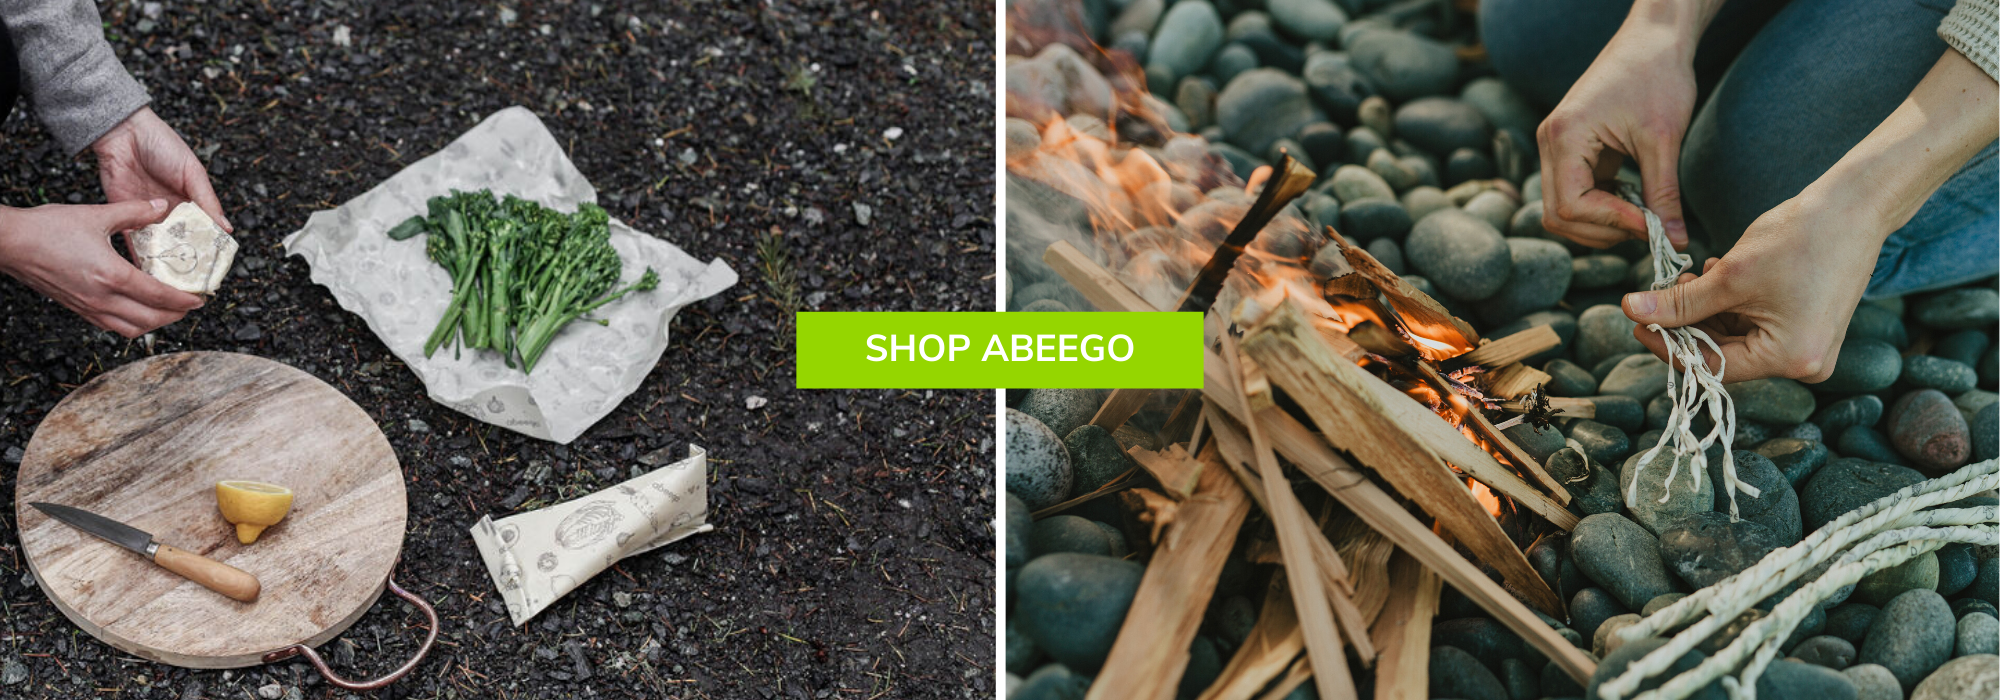 Abeego Outdoors